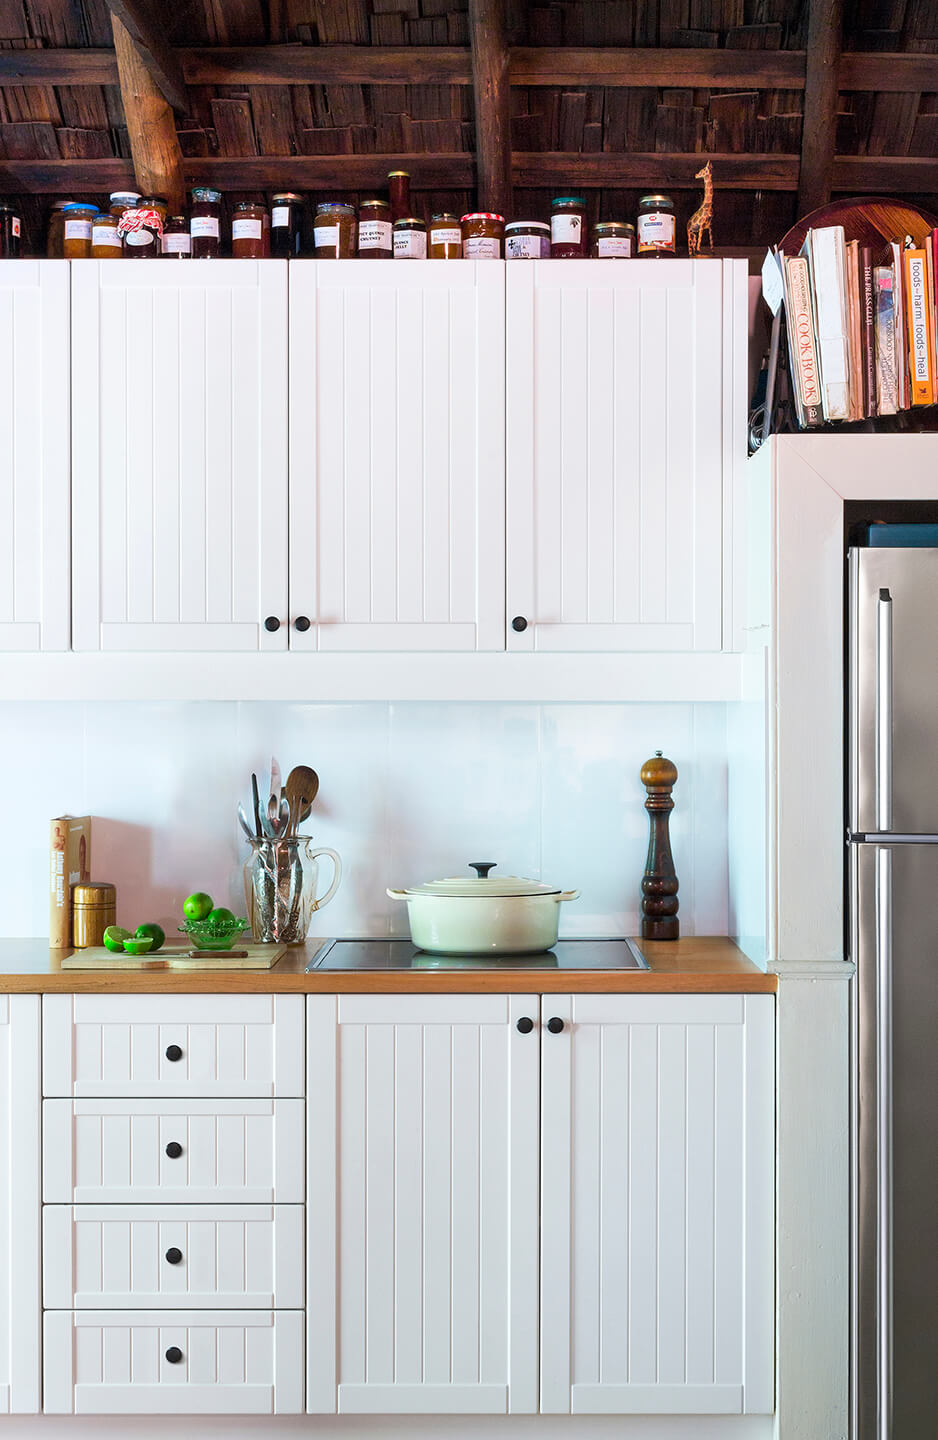 melamine kitchen cabinets cabinet patterns a hidden treasure - inspiration and ideas ...